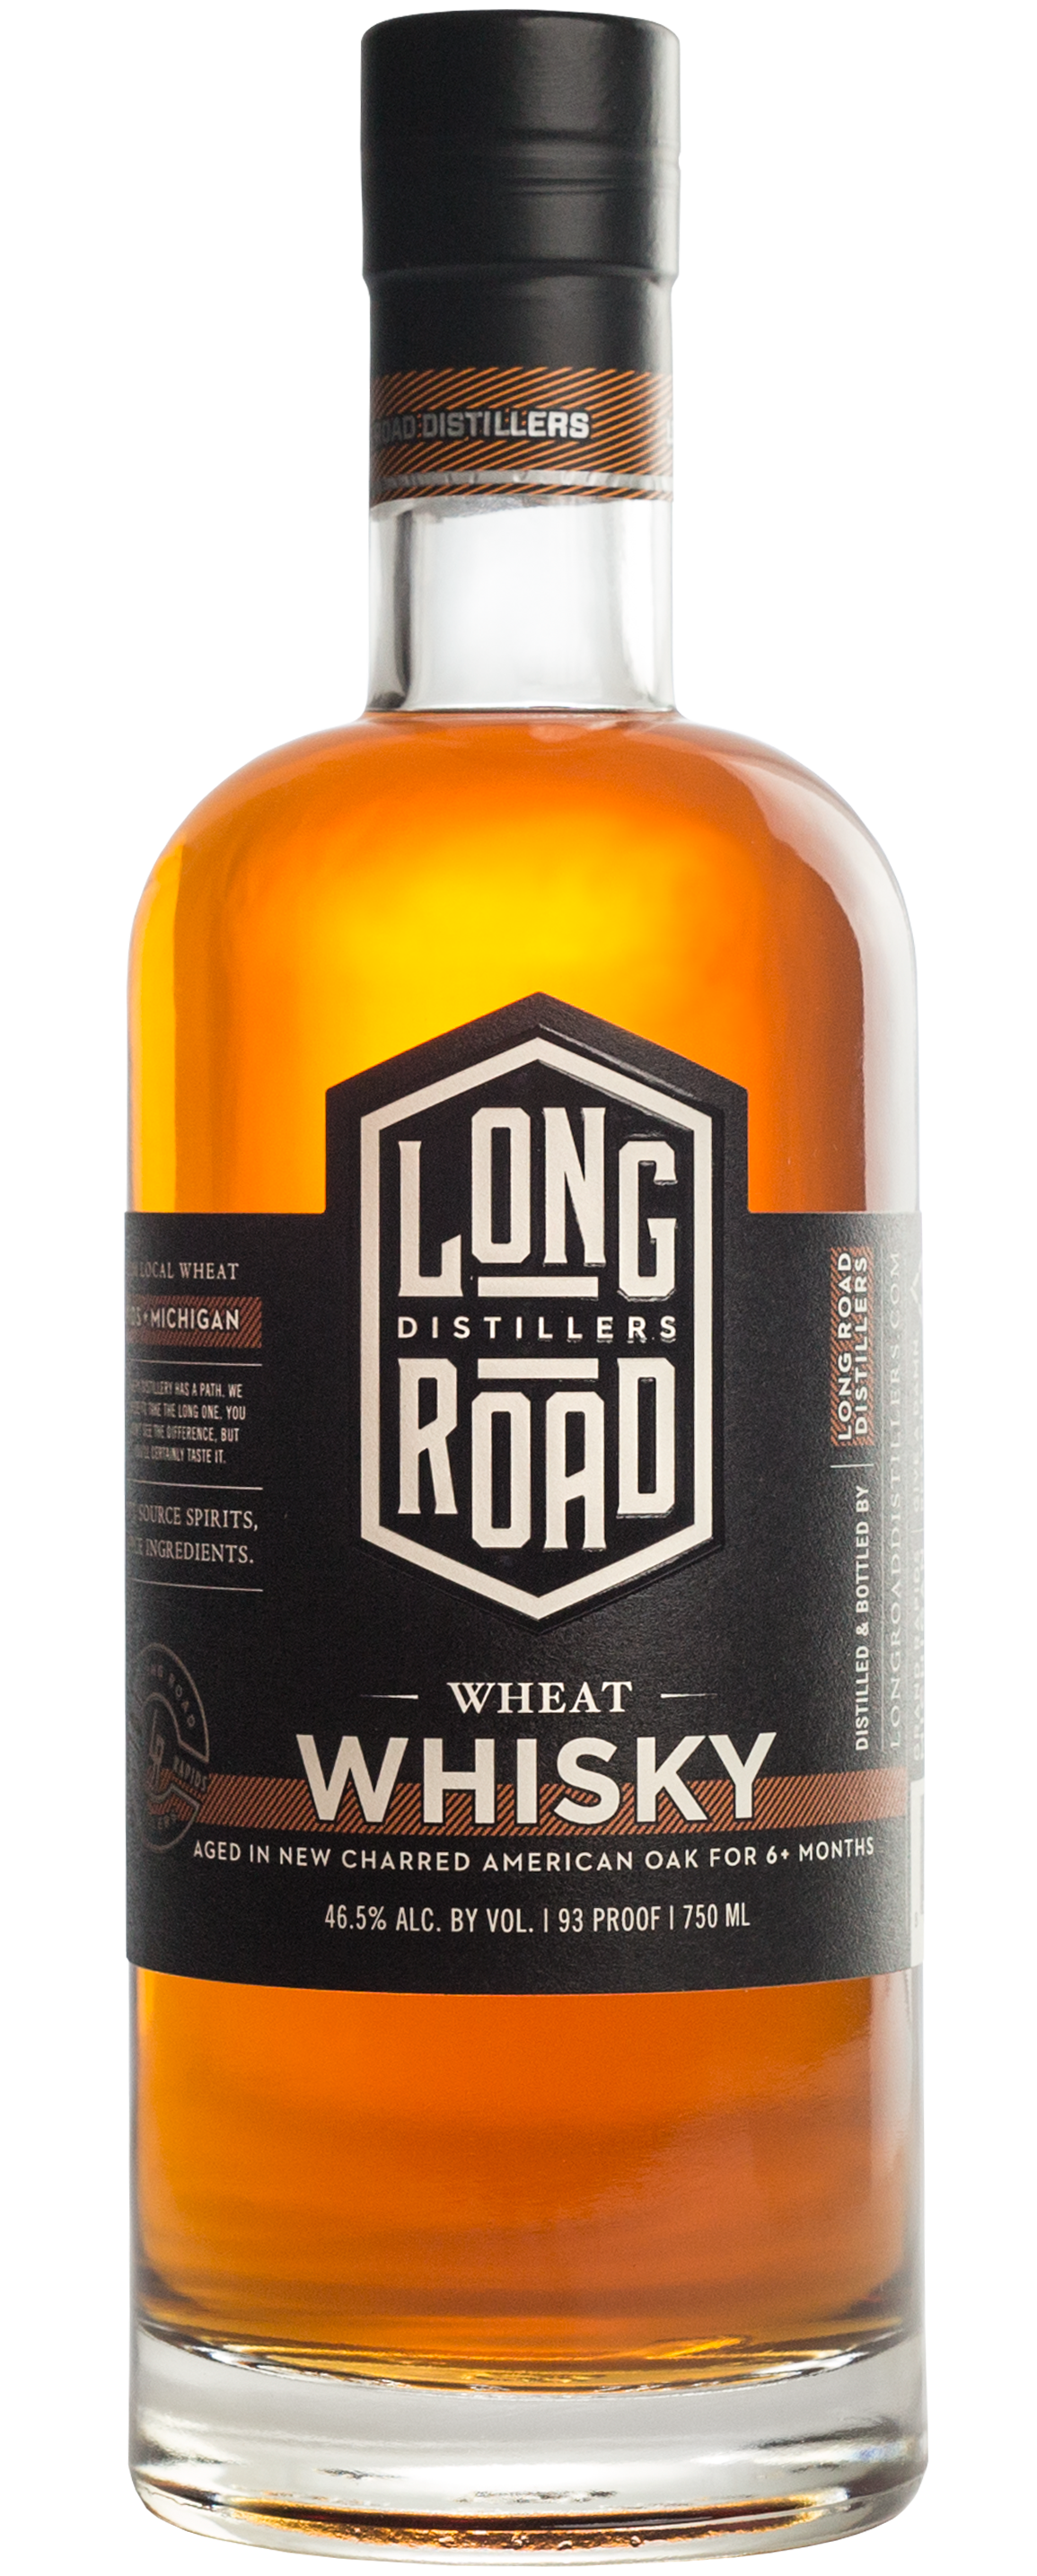 Wheat Whisky Long Road Distillers